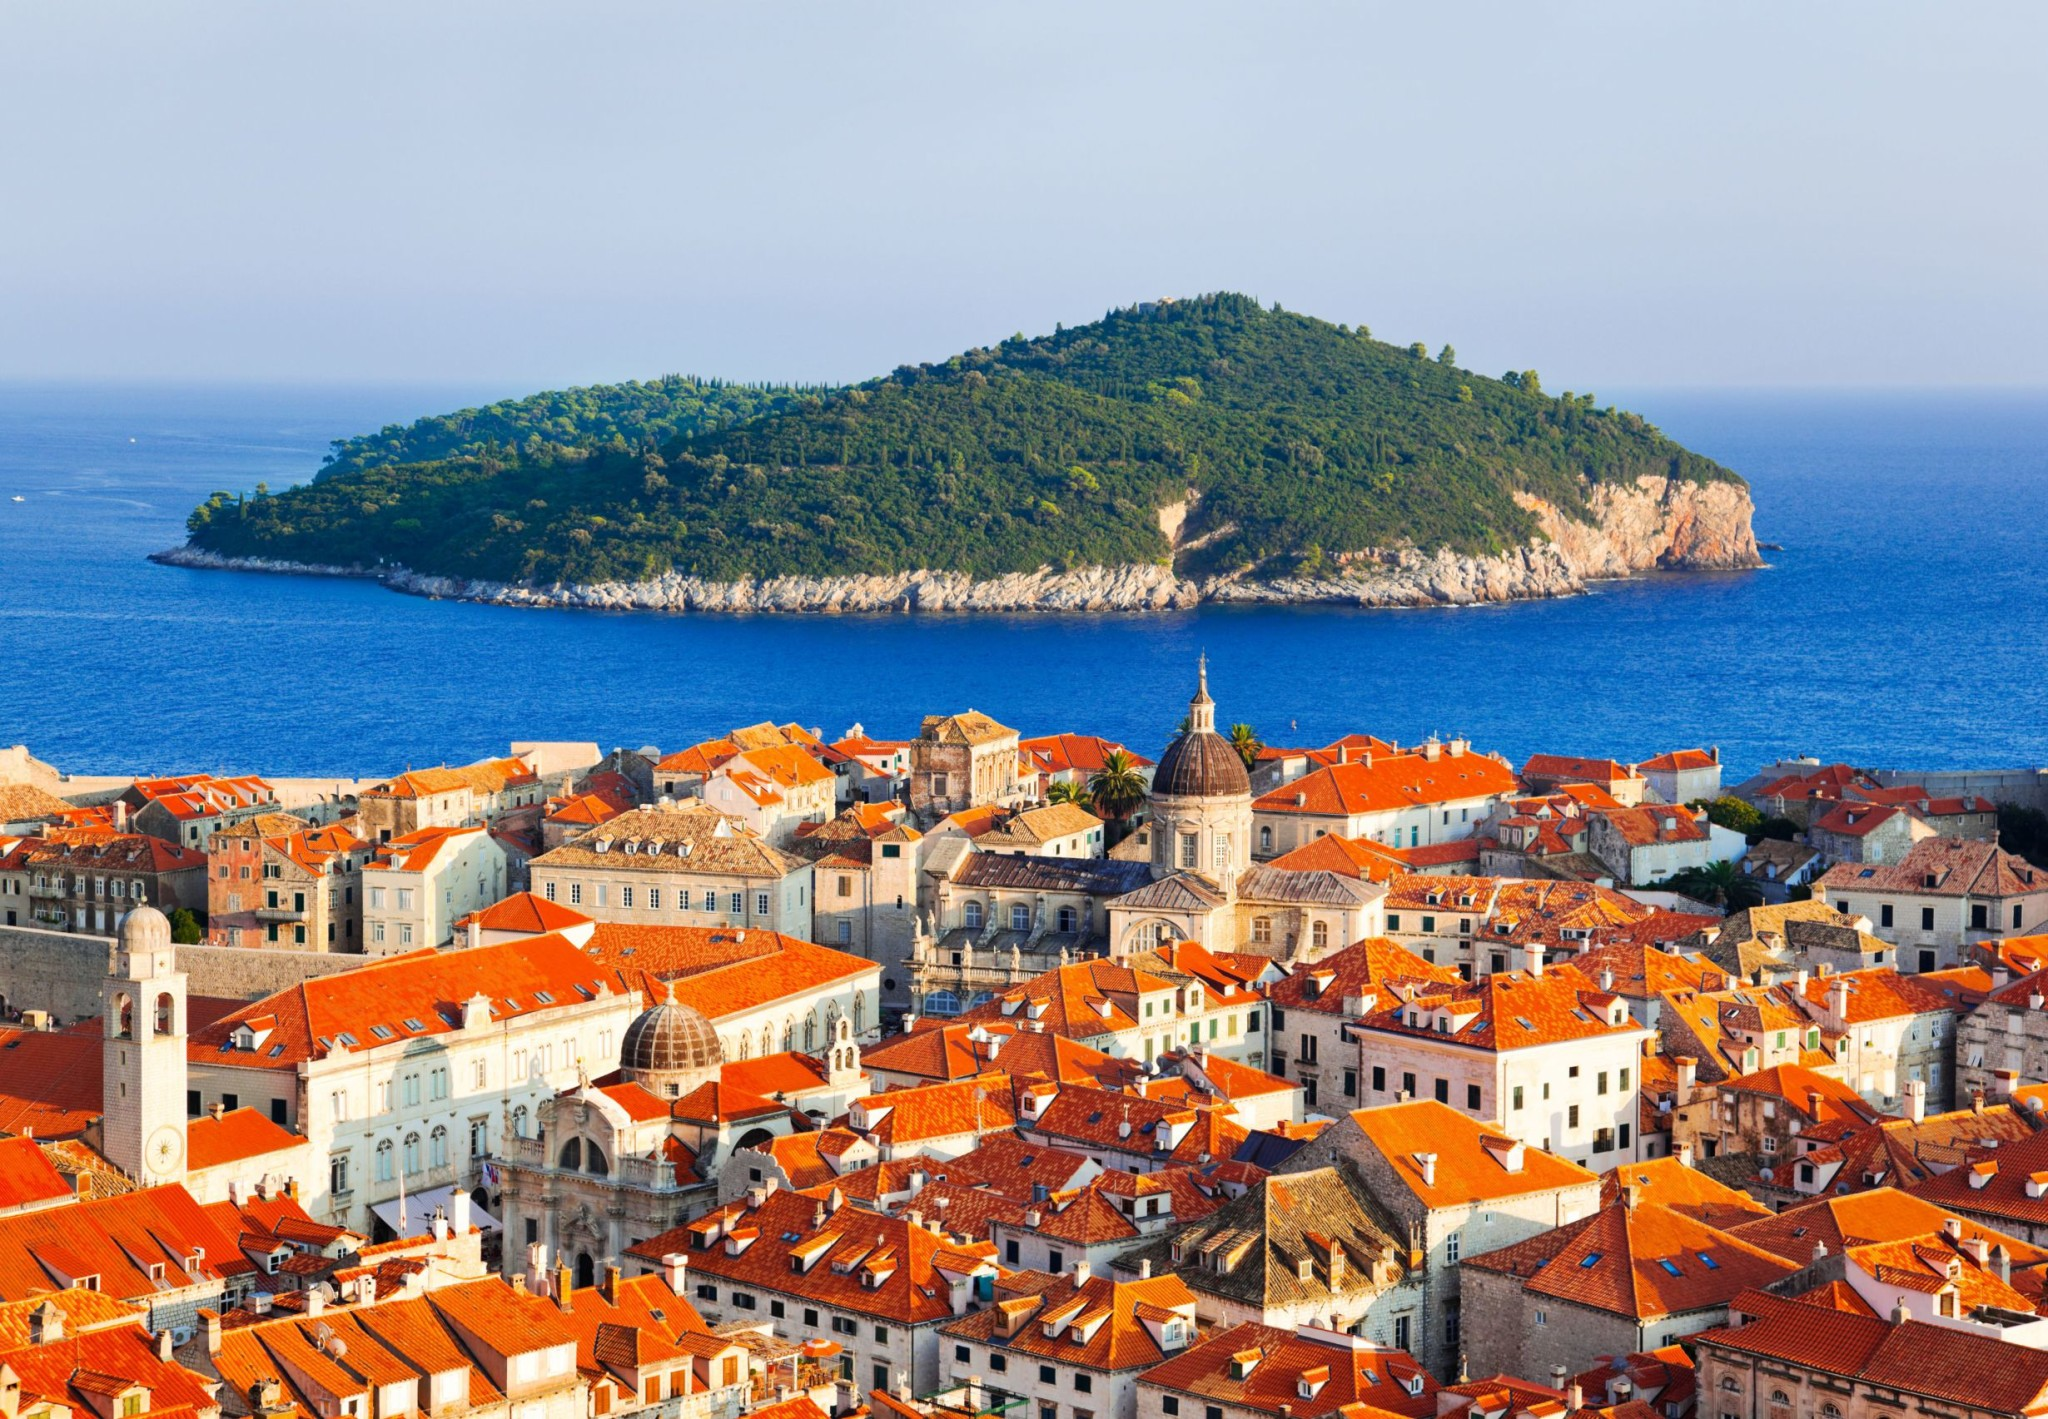 Dubrovnik and island in Croatia